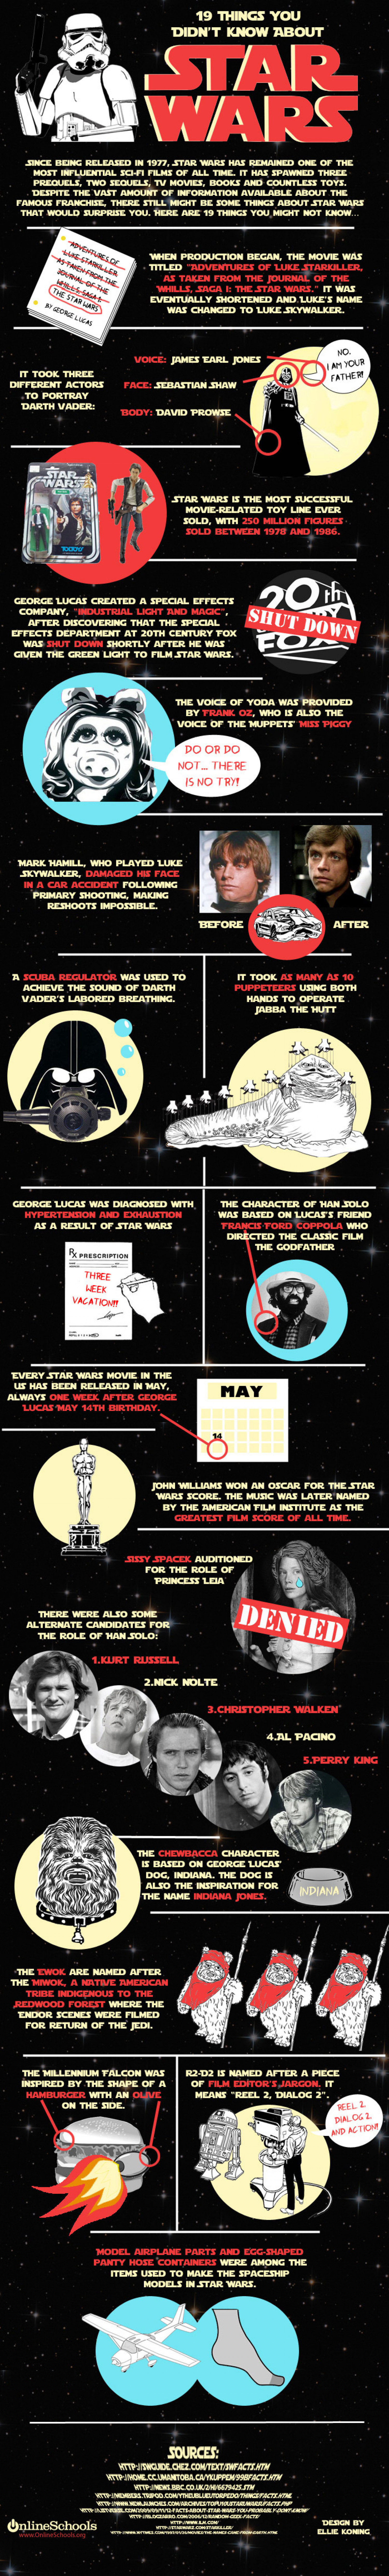 19 Things You Didn't Know About Star Wars Infographic